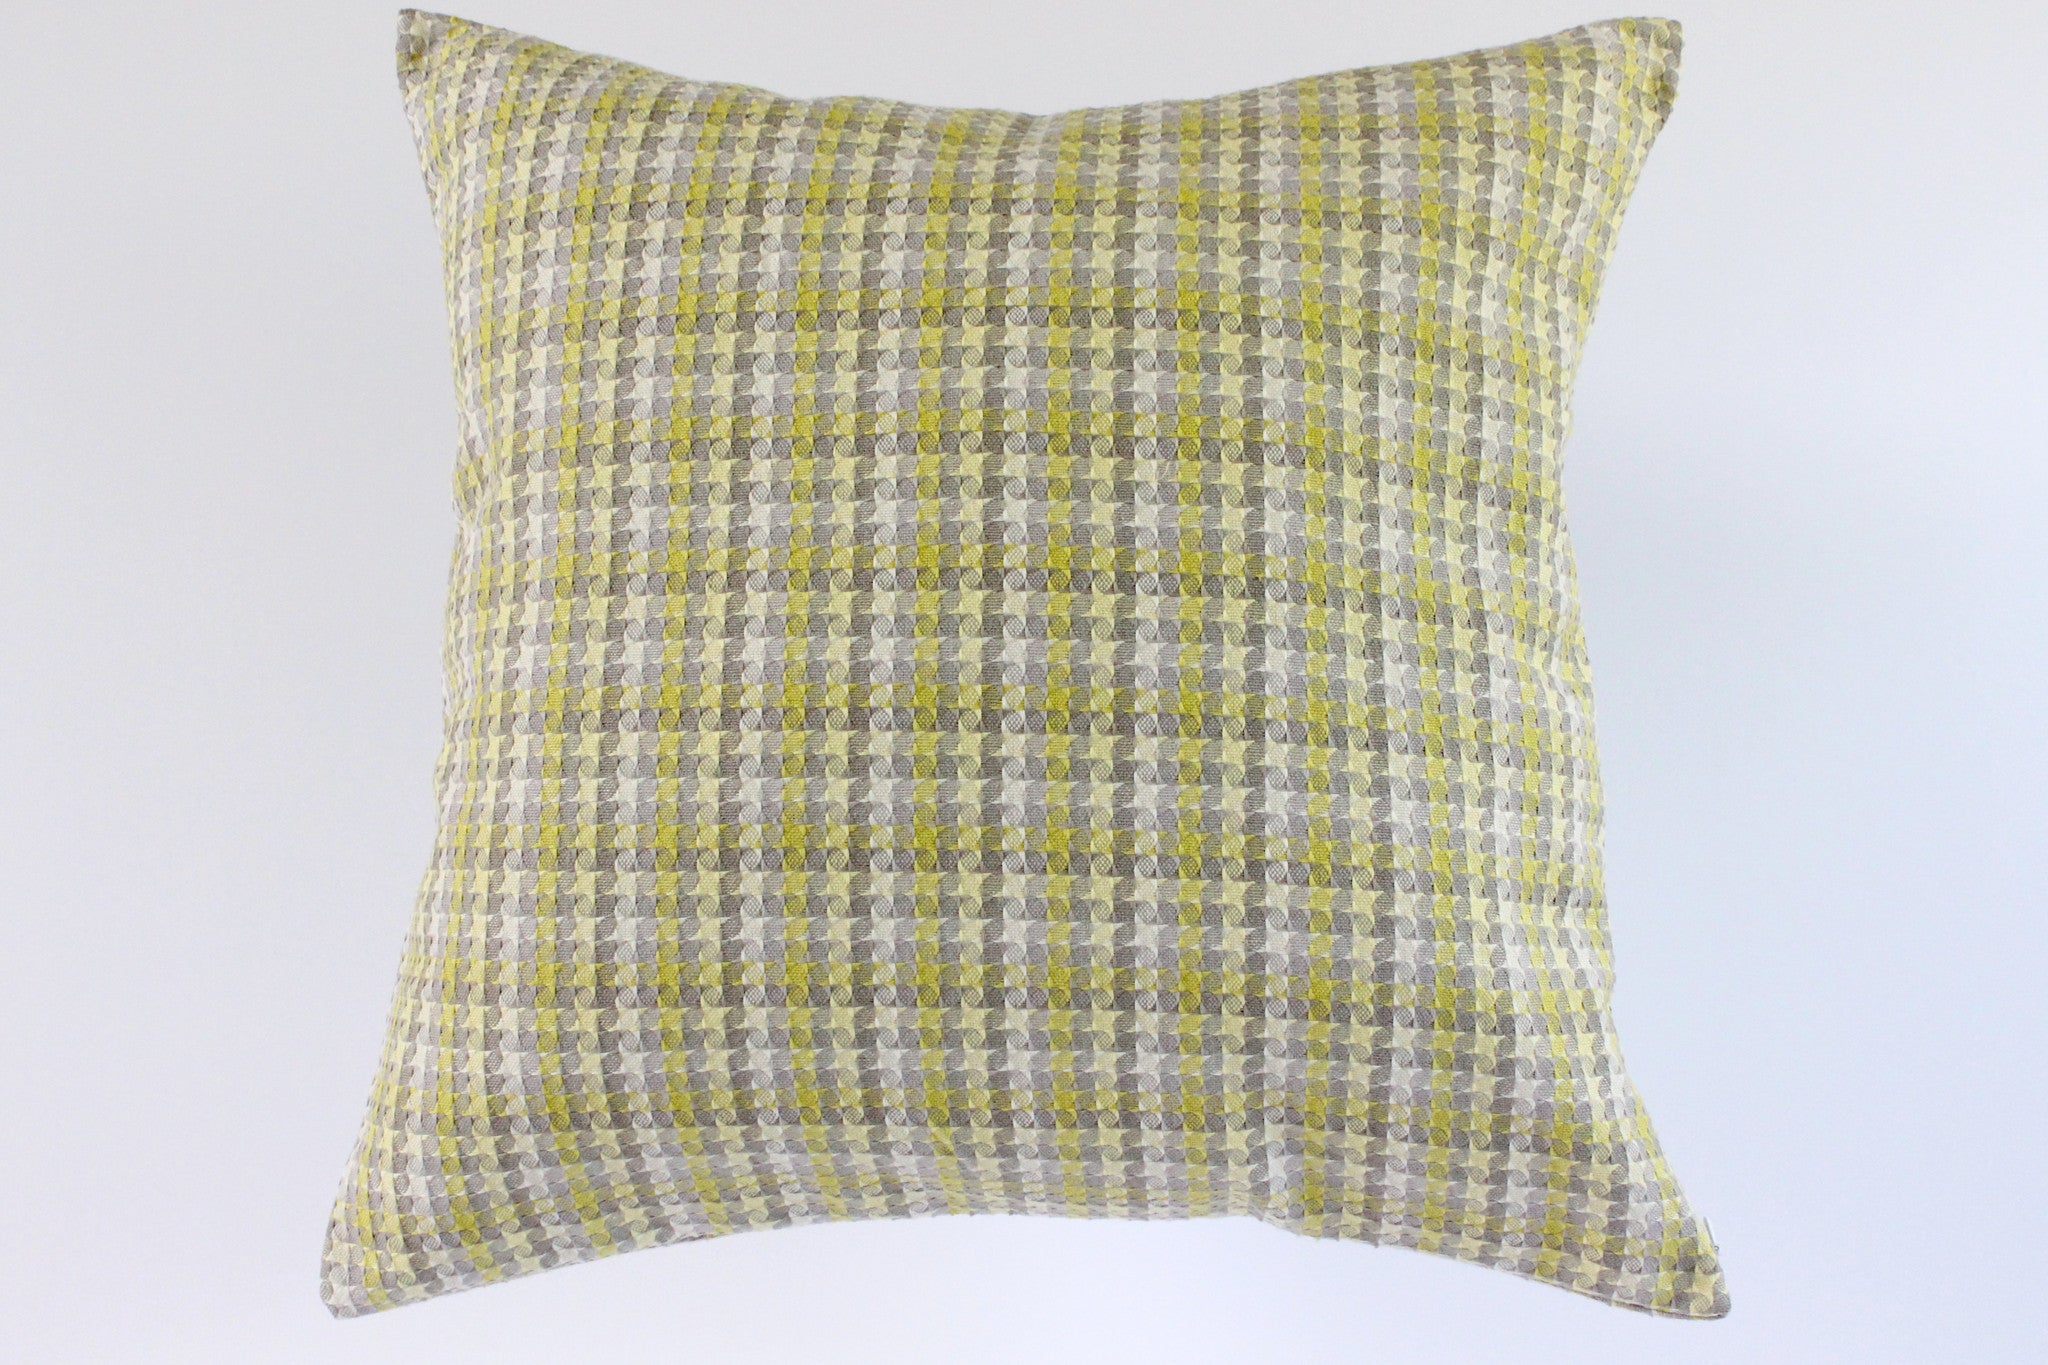 Checkered Textured Pillow Cover